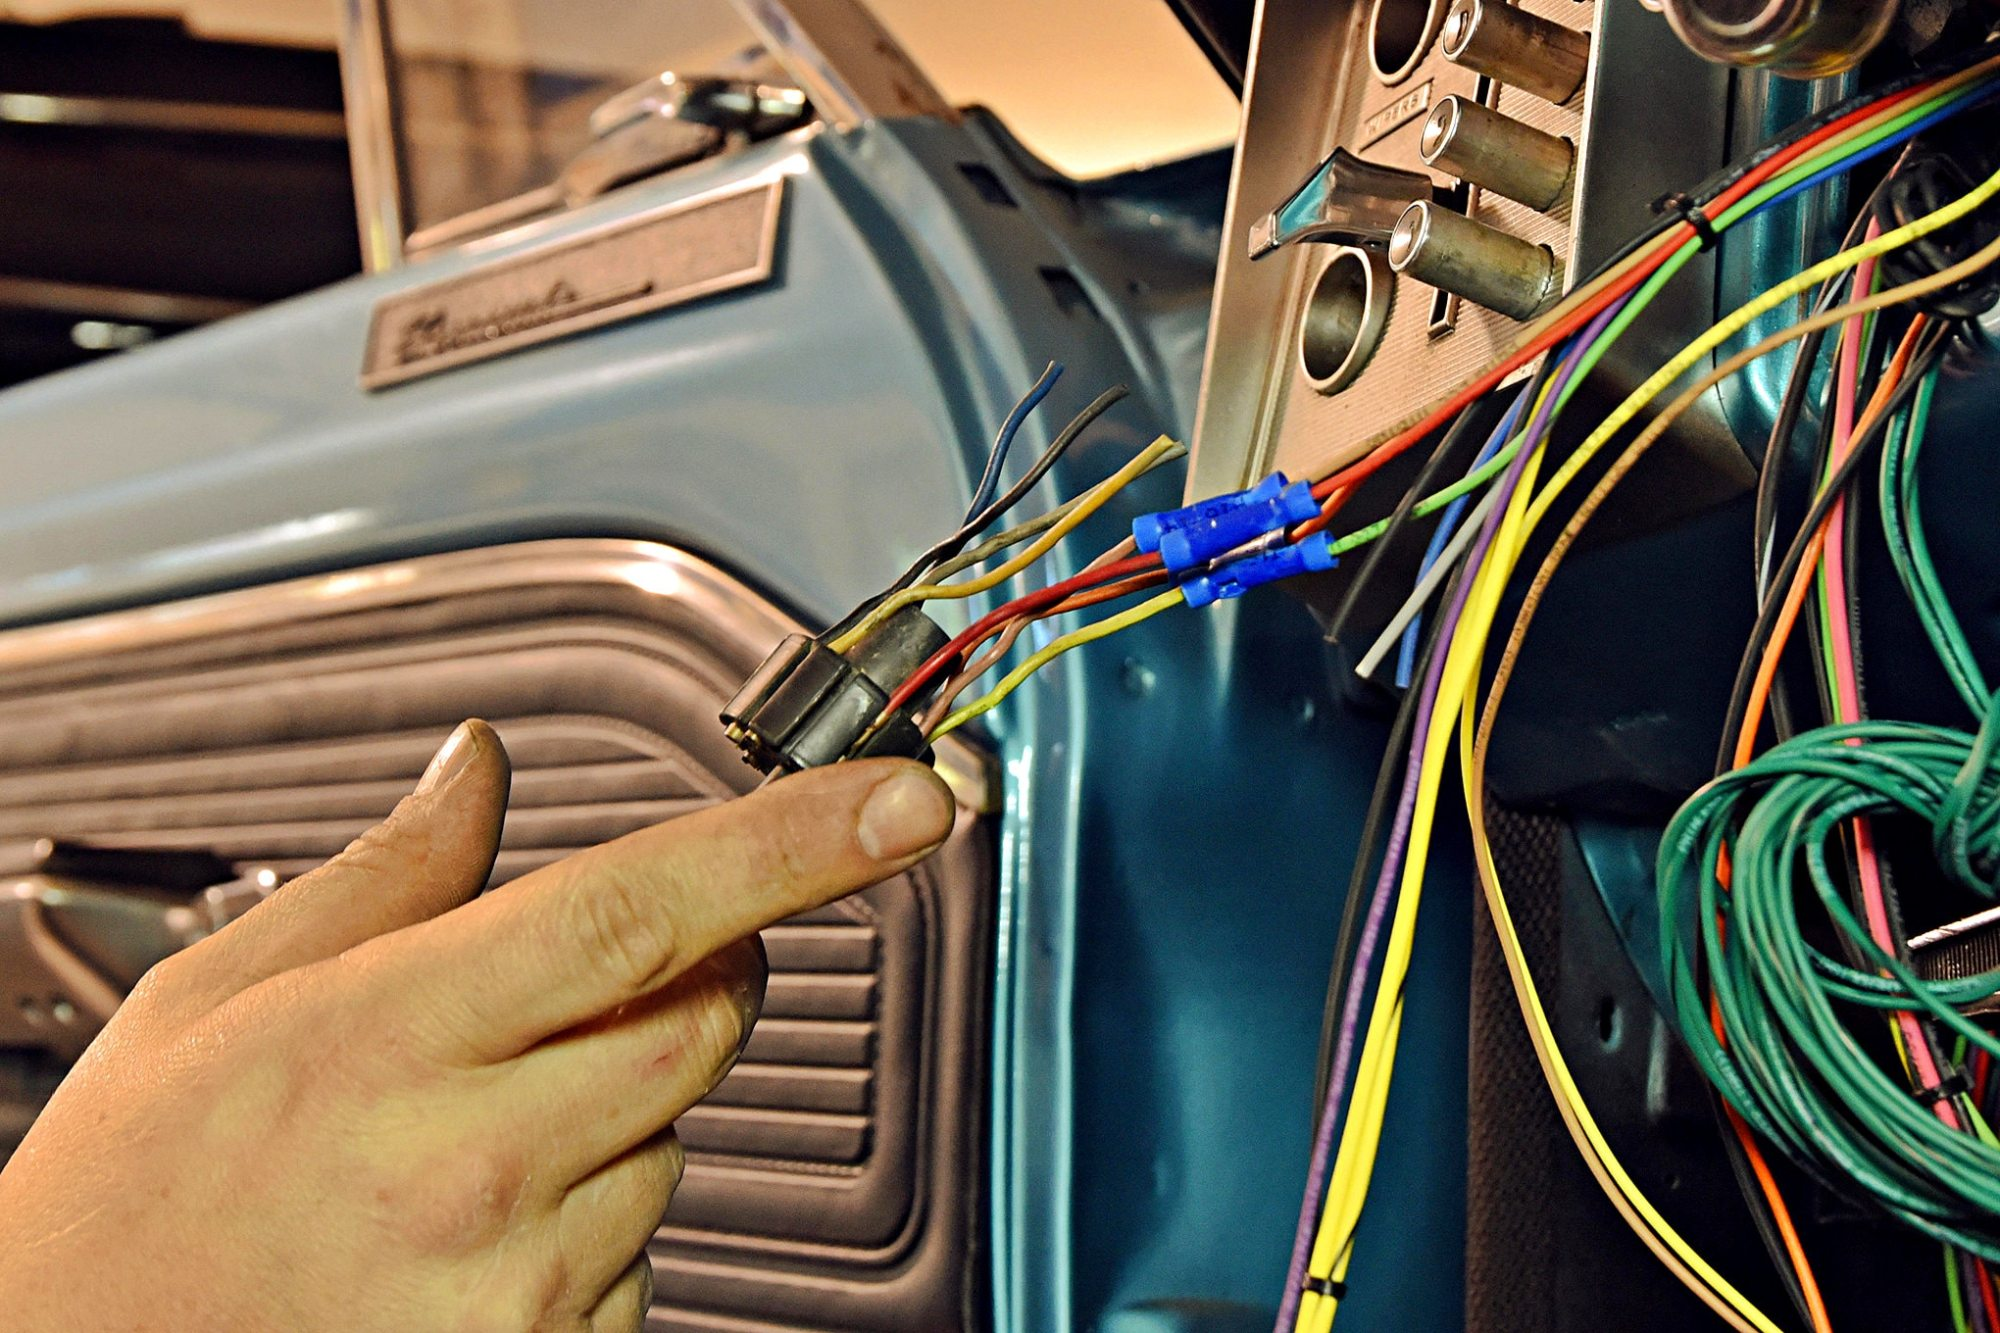 hight resolution of how to rewire a 1965 plymouth barracuda the painless way hot rod 780768 40 wiring diagram